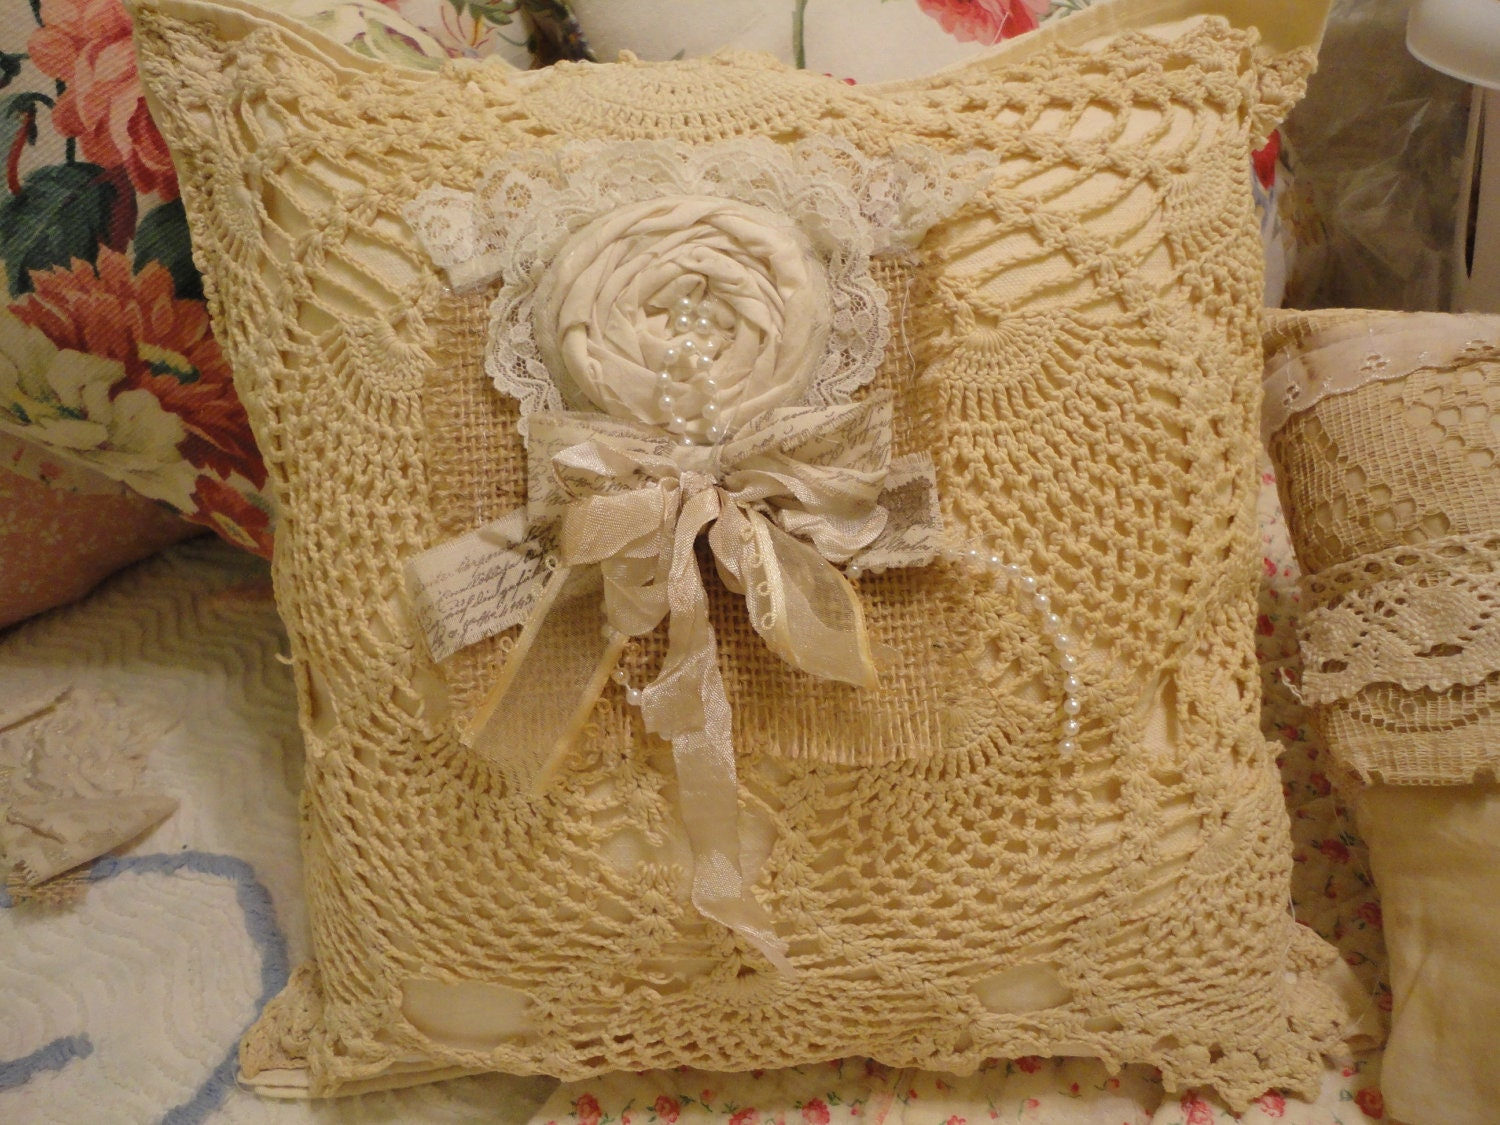 Vintage Crochet Overlay Shabby Chic Pillow Ribbons by TwoScoops4U